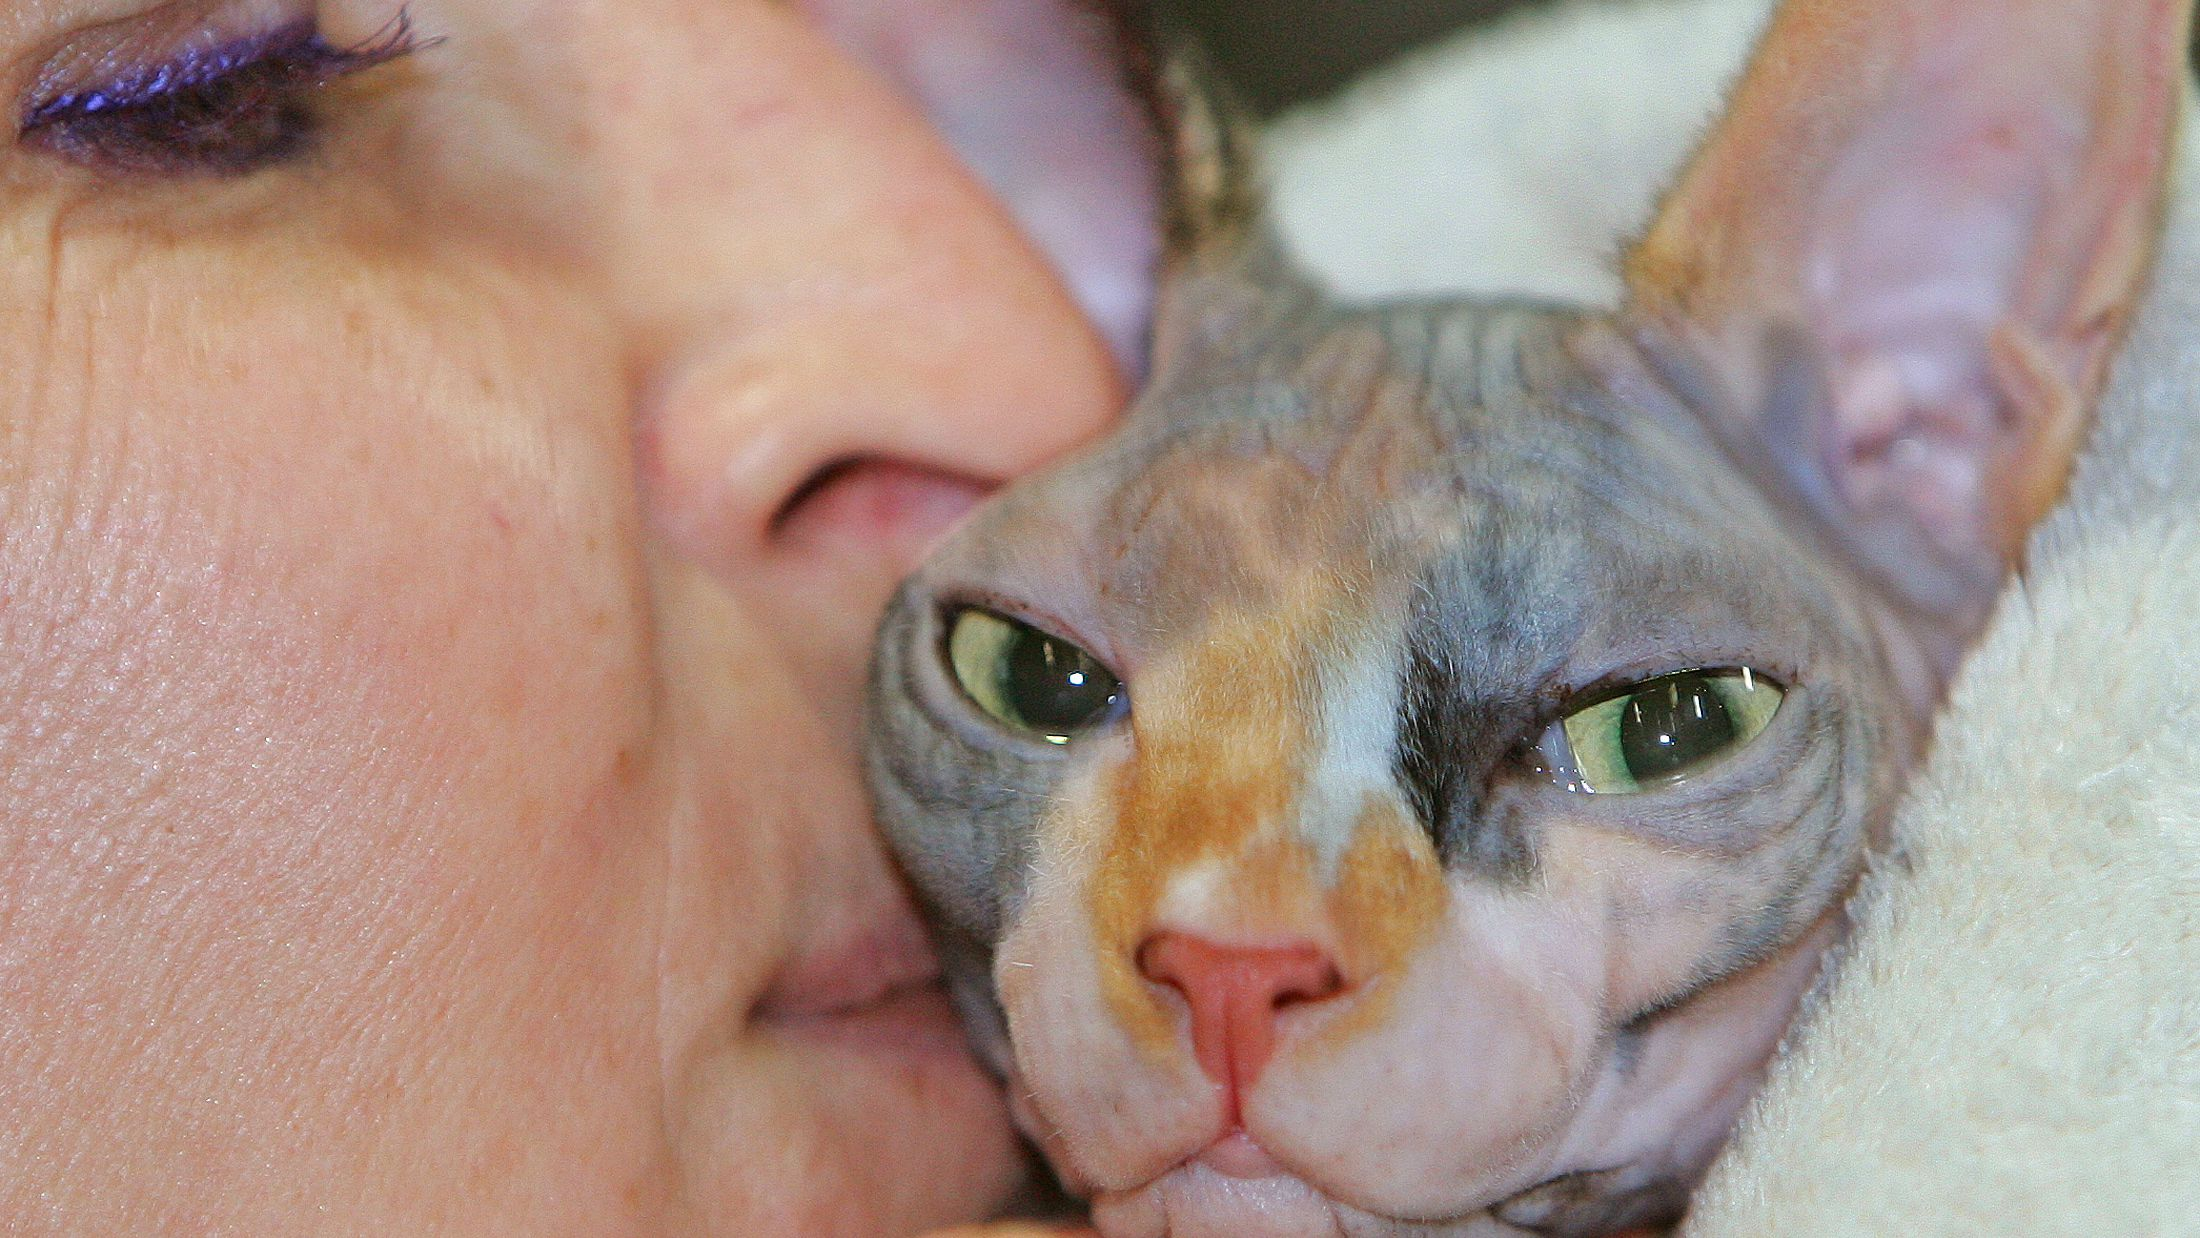 A seven-month Sphinx cat named Yvette receives a kiss from her owner during an international feline beauty contest in Brussels February 5, 2006. The contest took place with an exhibition of the cutest cats from all over Europe. REUTERS/Yves Herman